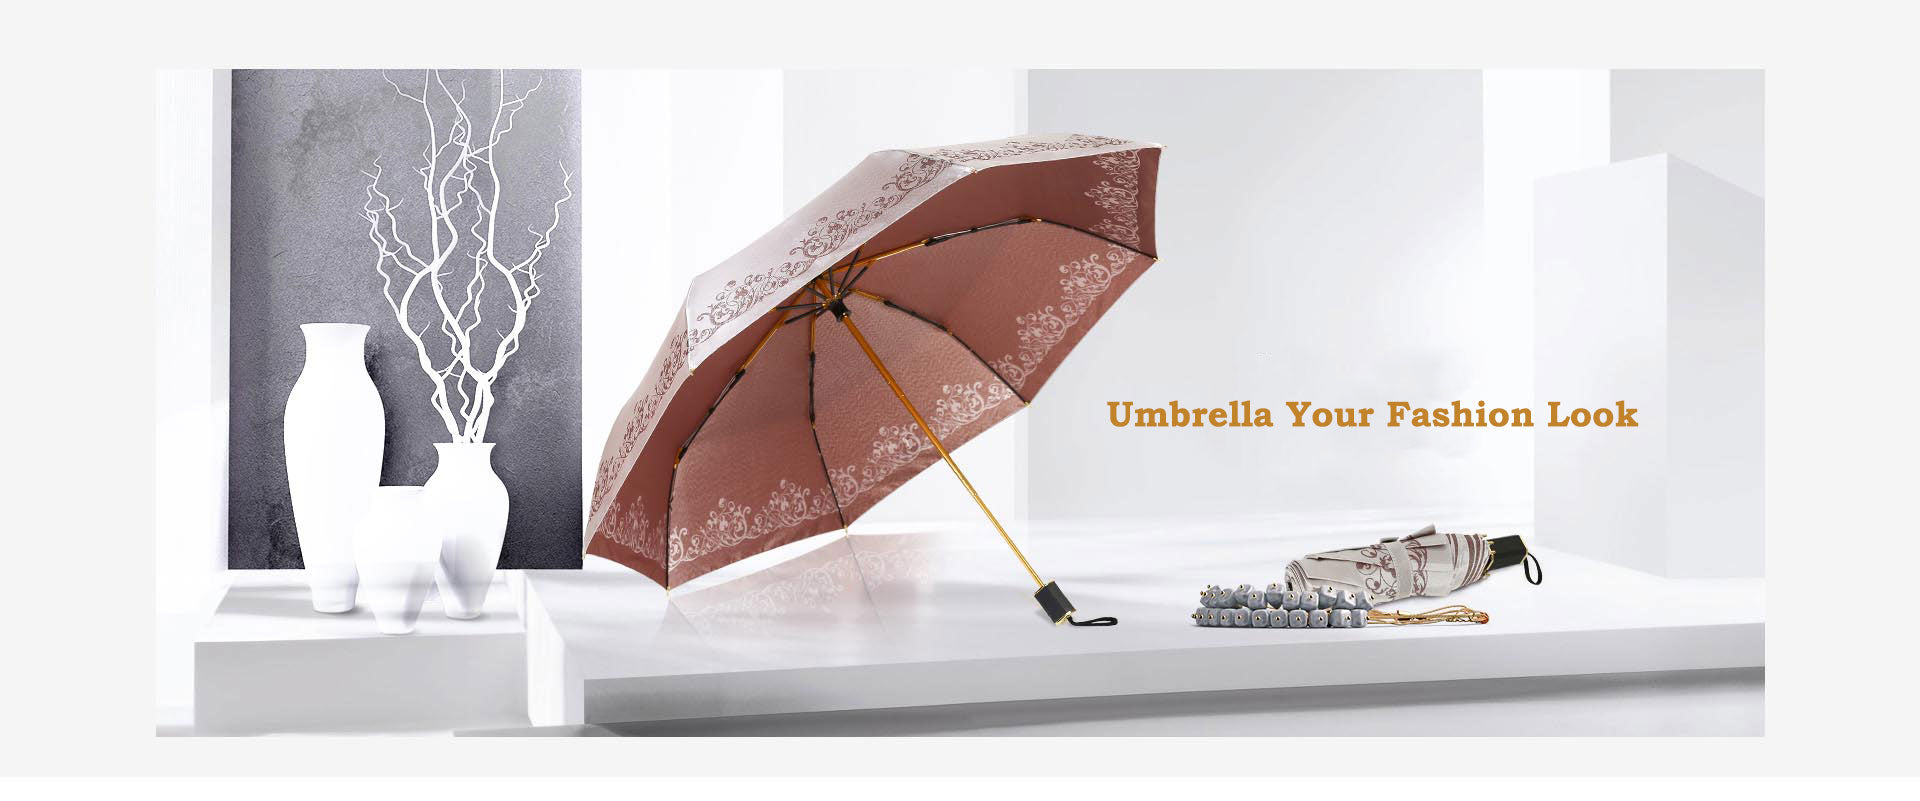 How Does Umbrella Lift Fashion Look?